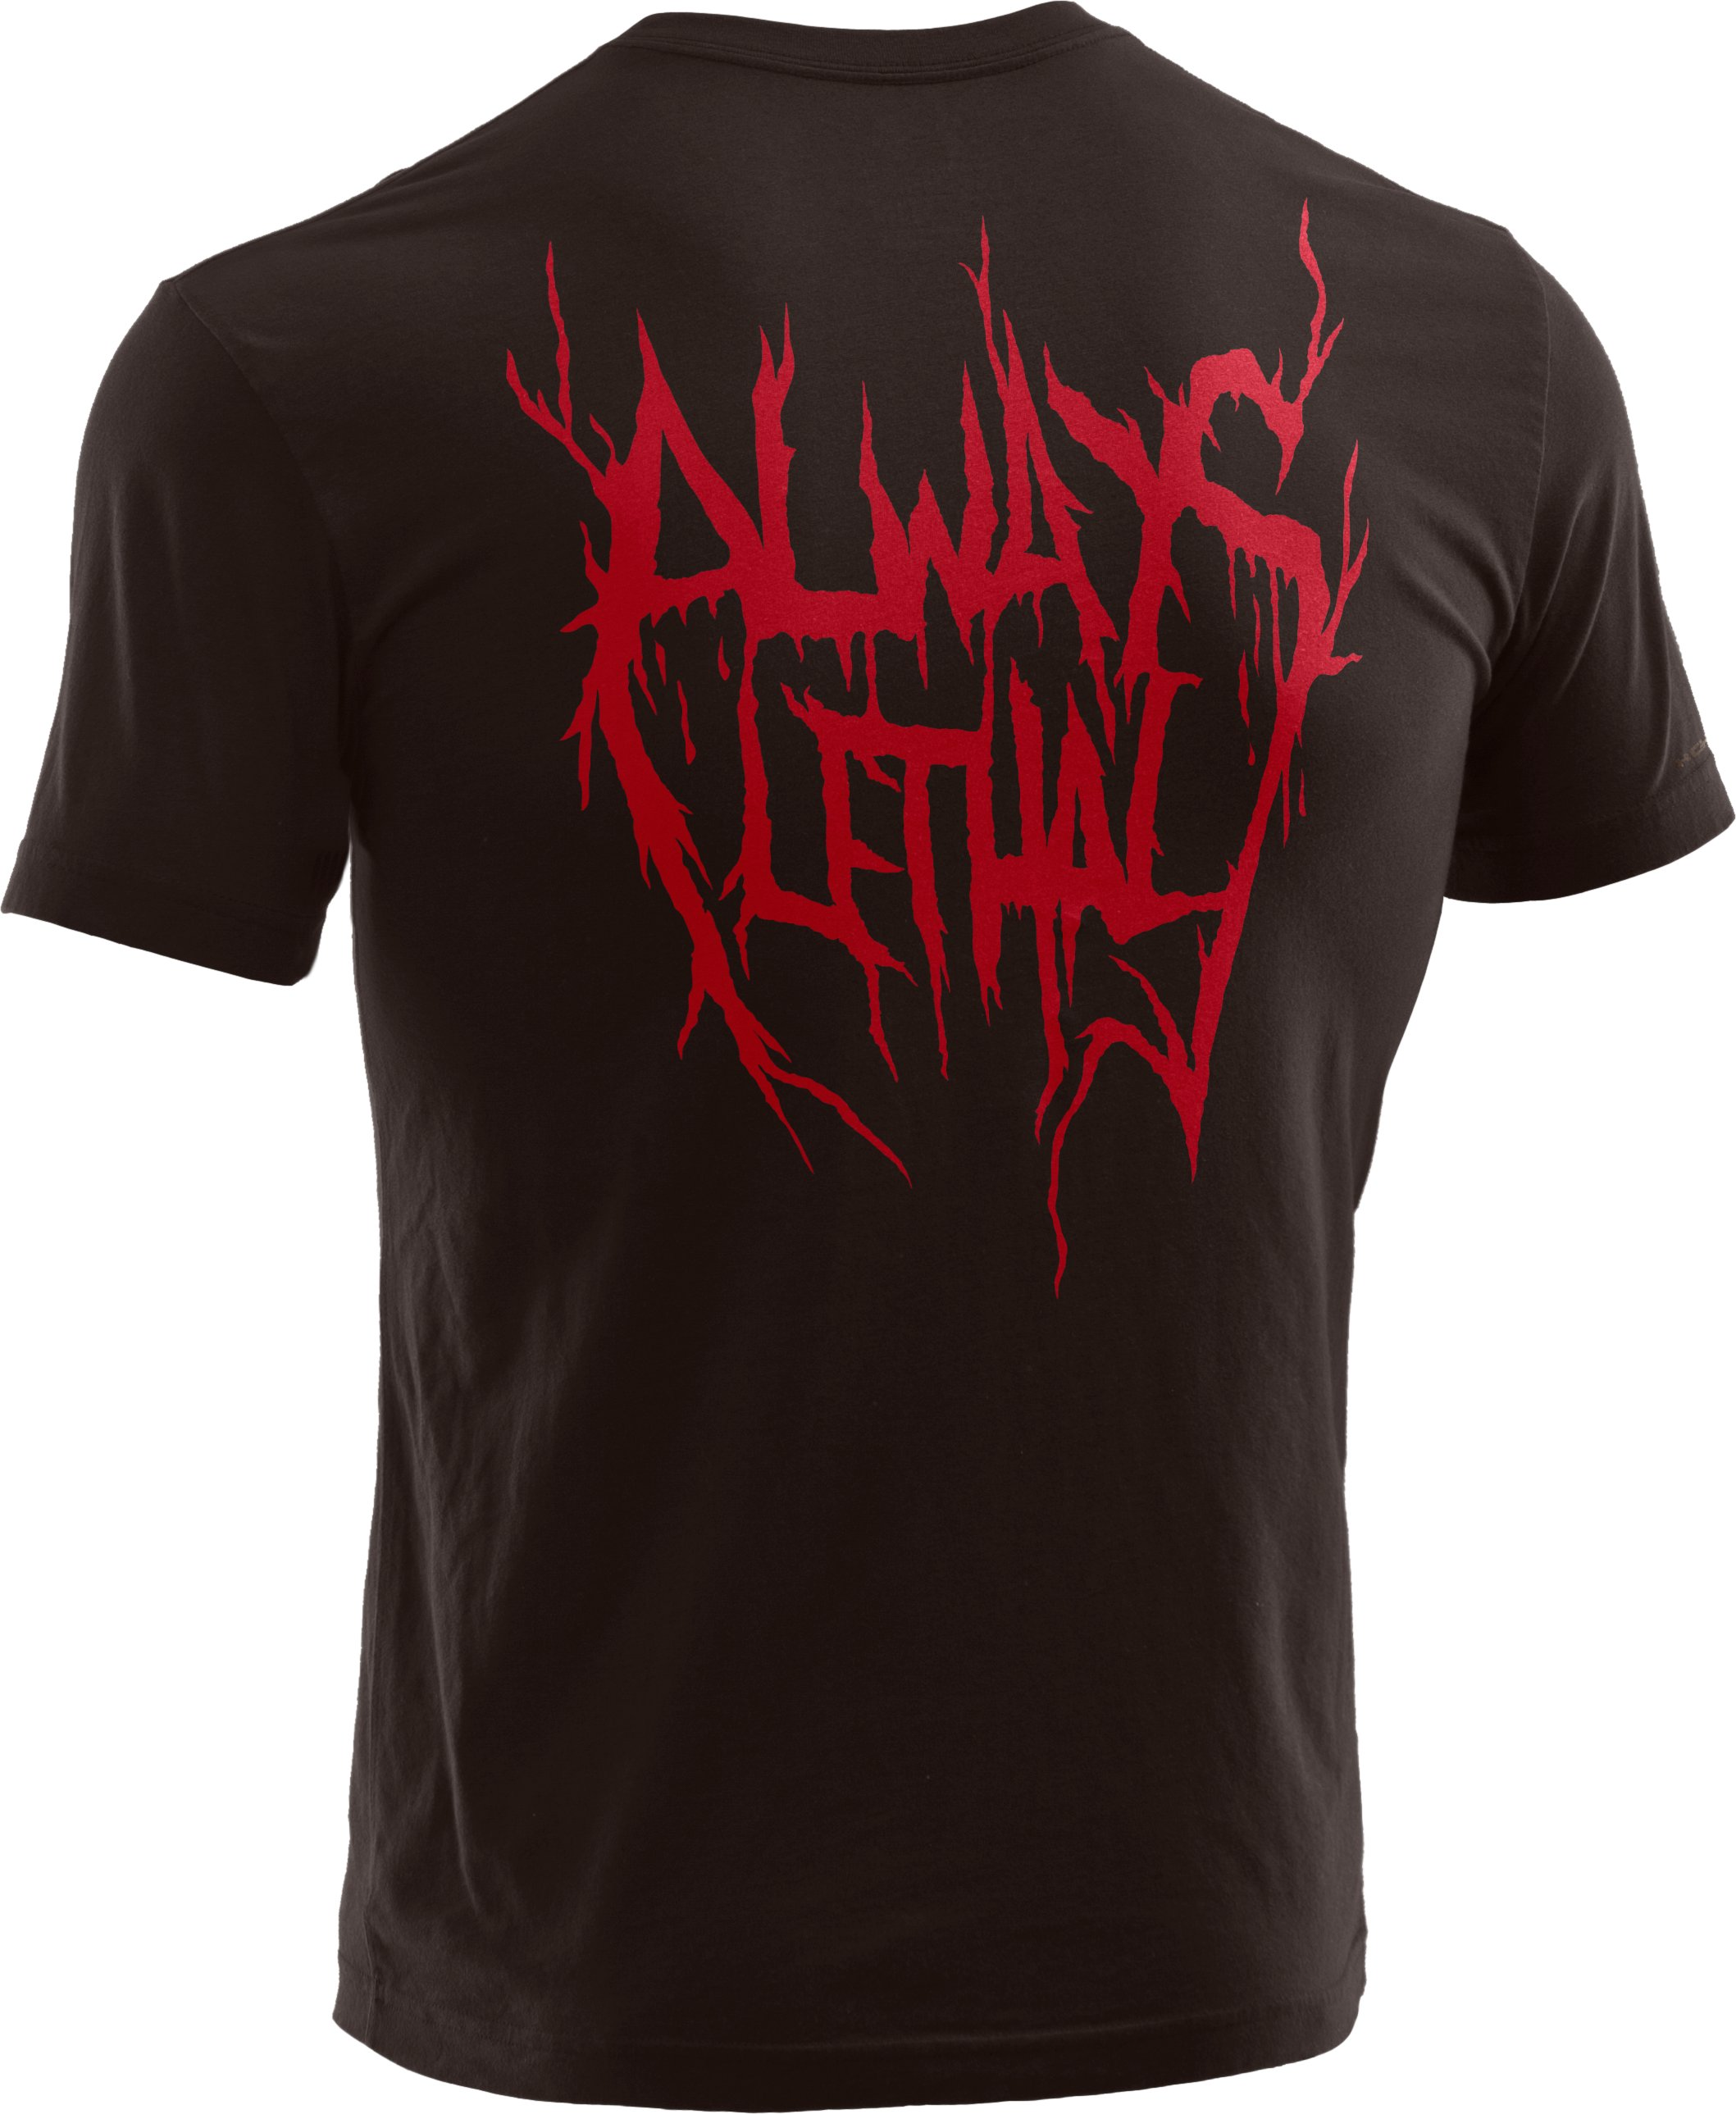 Men's Always Lethal™ Script T-Shirt, Bureau